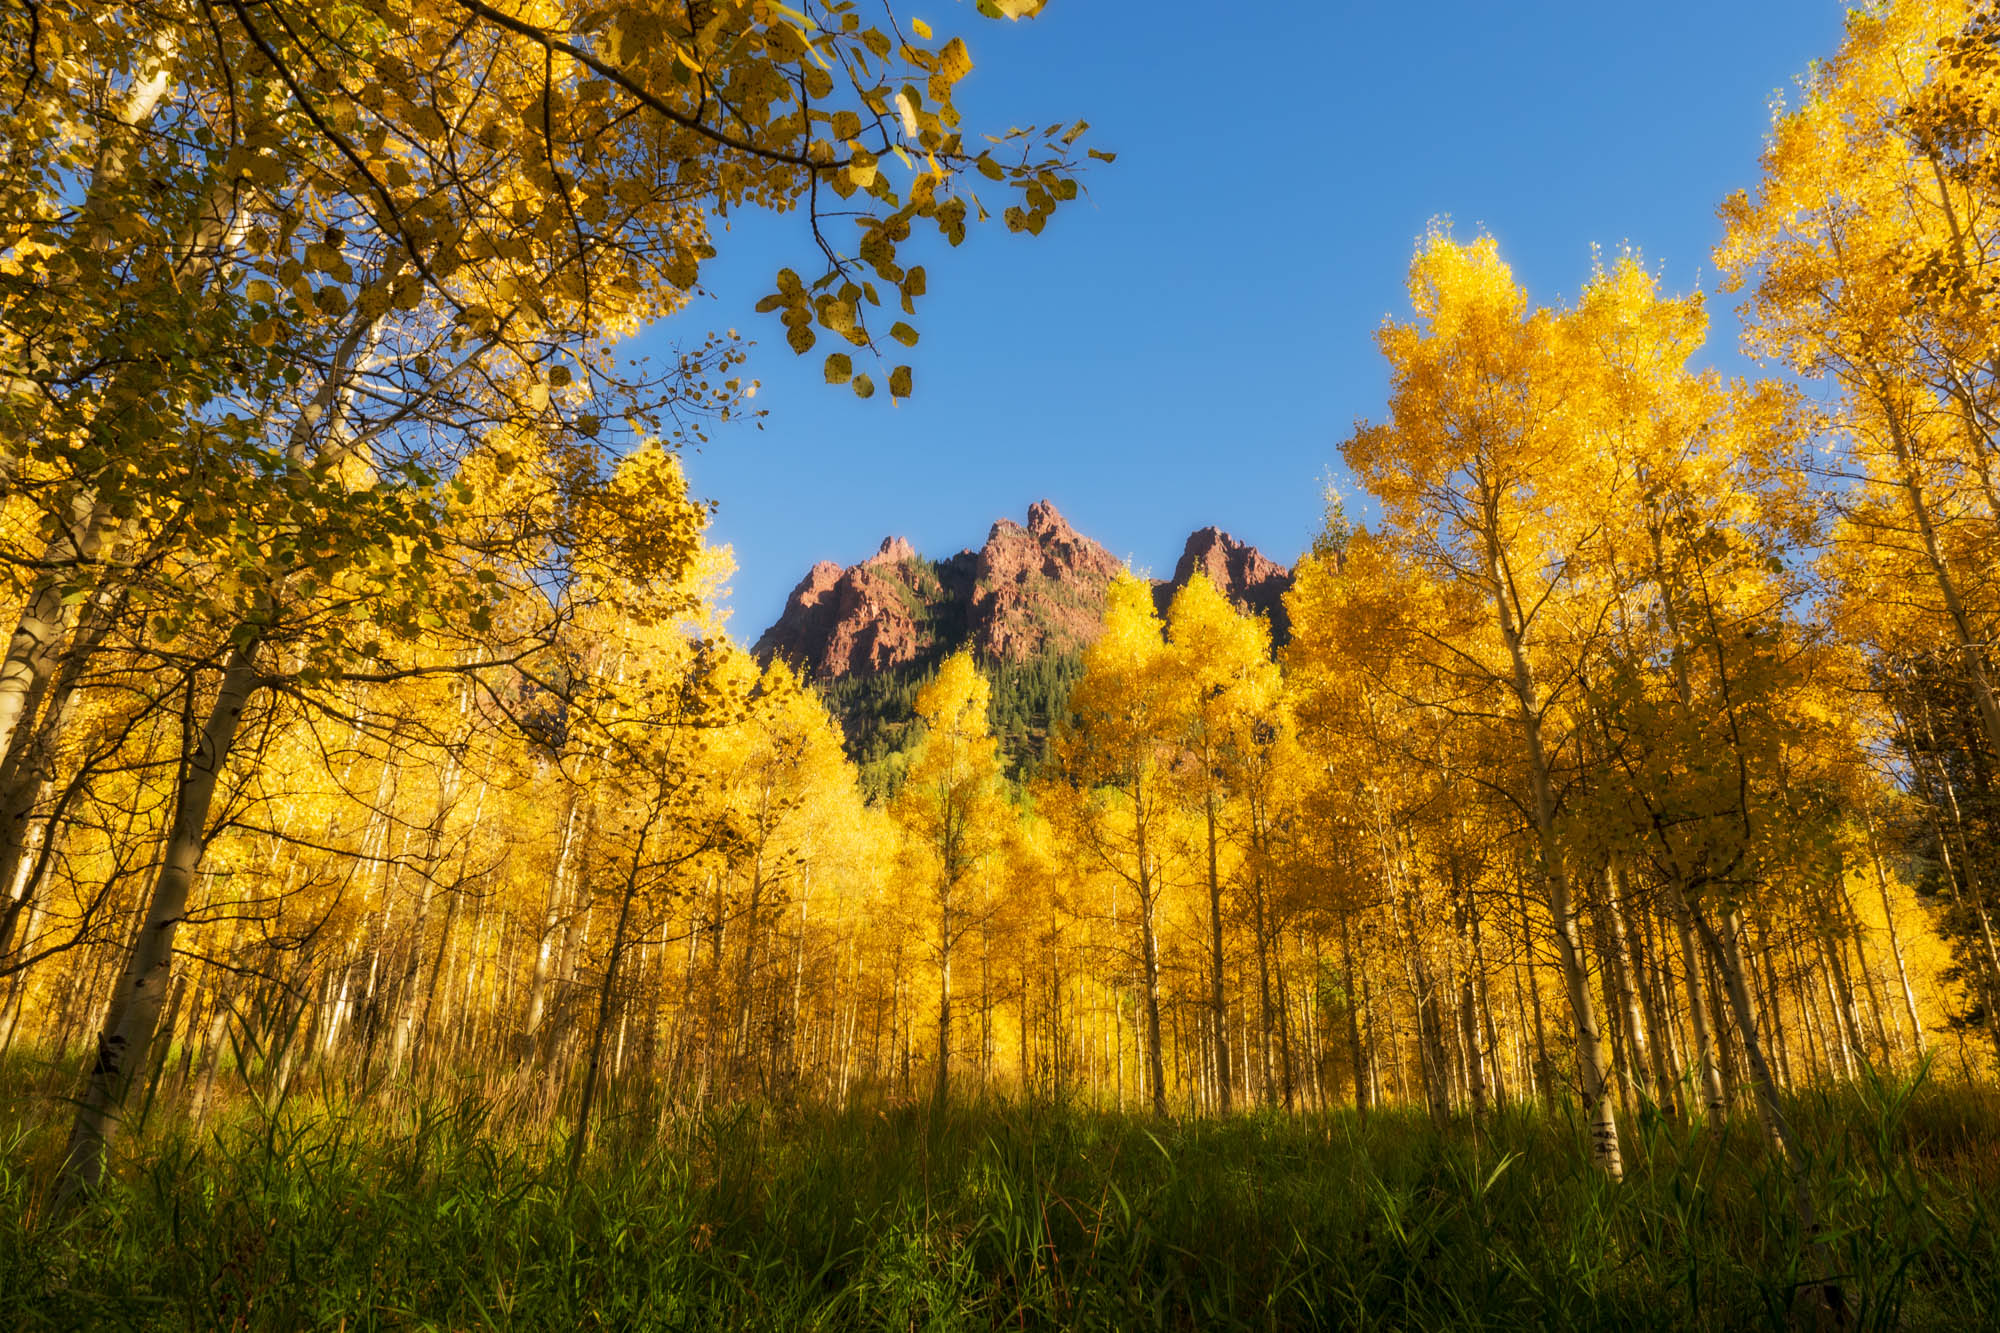 Aspen and Mountain